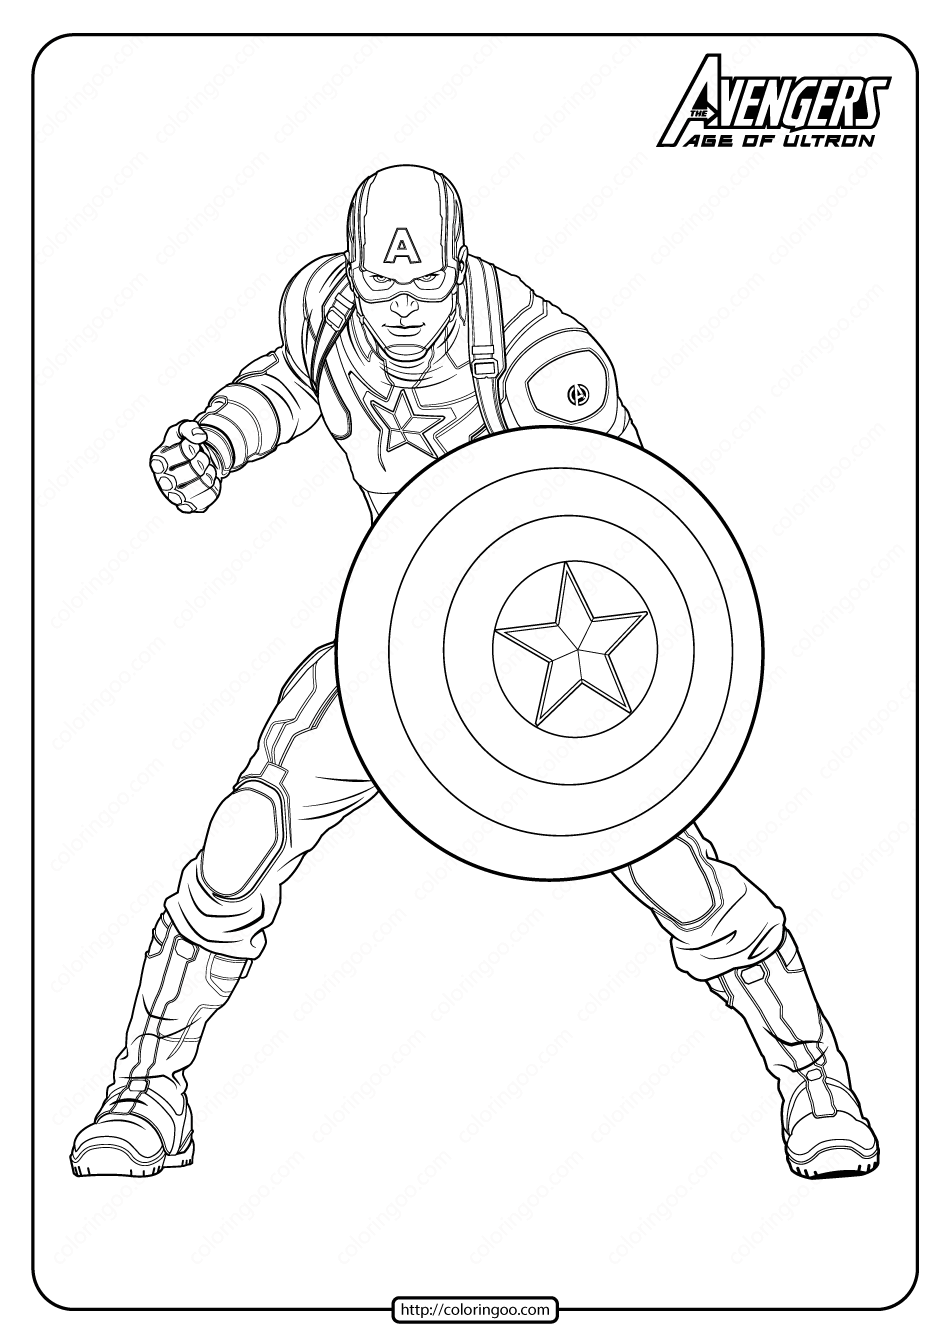 Marvel Avengers Captan America Pdf Coloring Pages In 2020 Superhero Coloring Pages Avengers Coloring Pages Captain America Coloring Pages